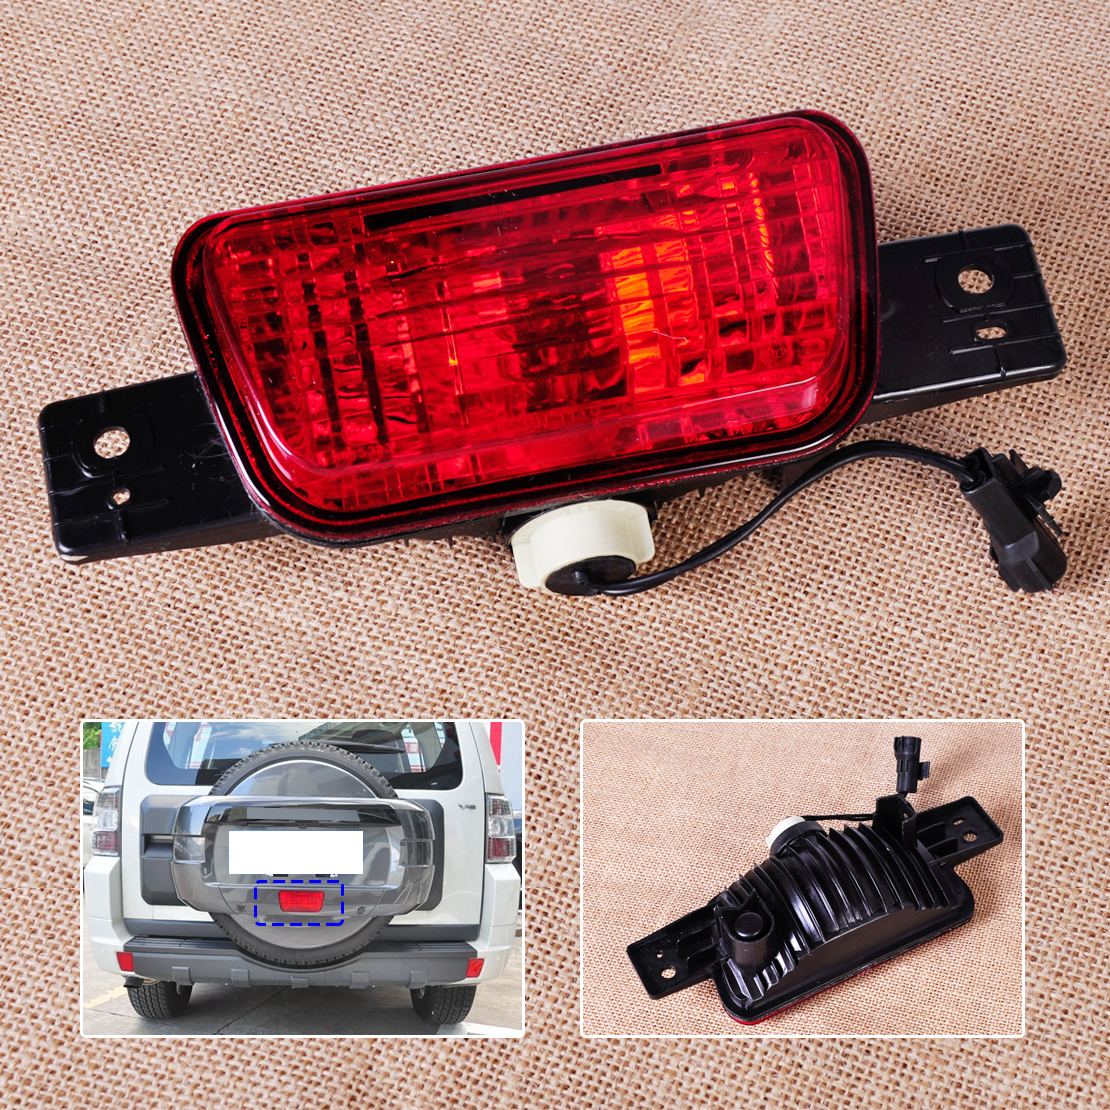 CITALL Rear Spare Tire Cover Tail Bumper Light Fog Lamp for Mitsubishi Pajero Shogun 2007 - 2009 2010 2011 2012 2013 2014 2015 car fog light assembly for mitsubishi pajero 2007 2008 2009 left